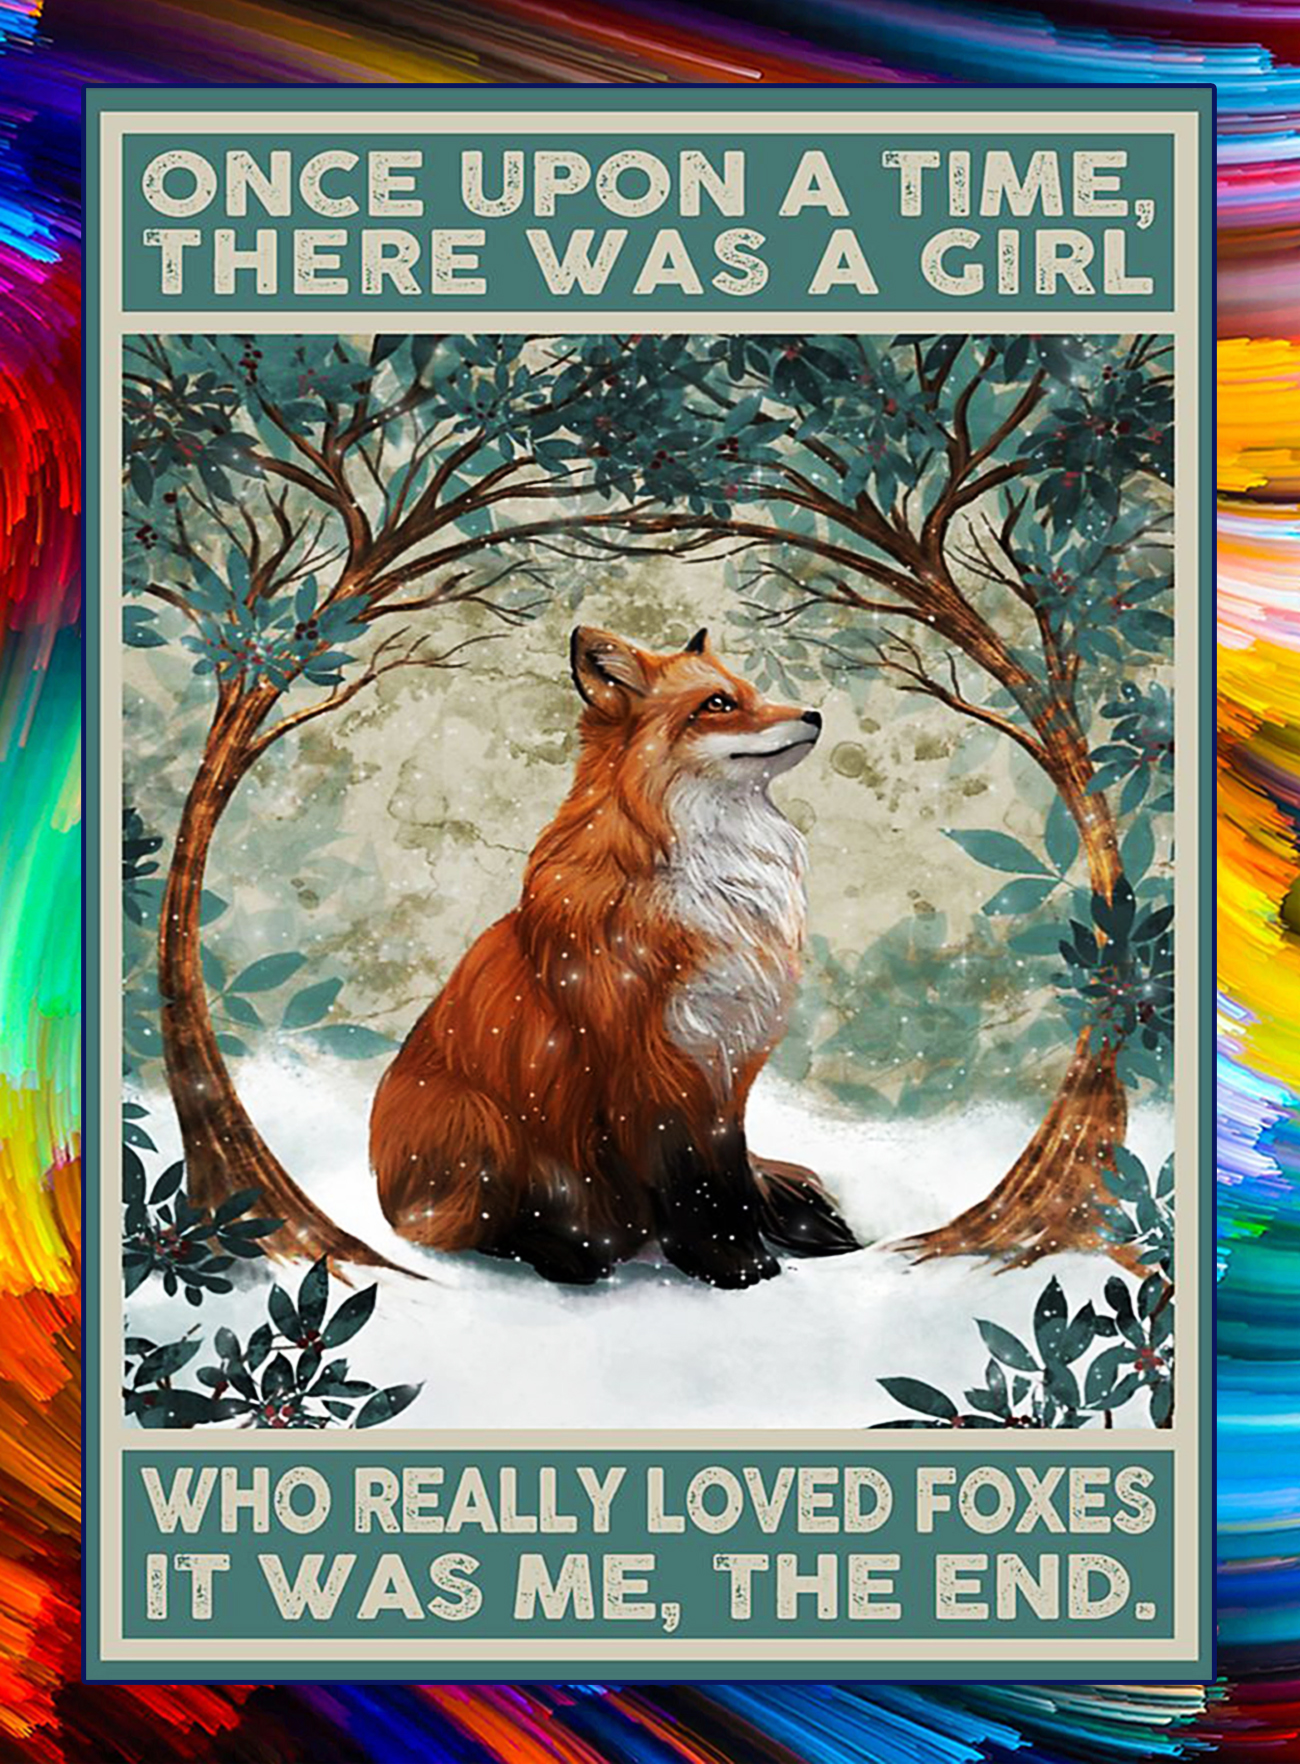 There was a girl who really loved foxes poster - A1